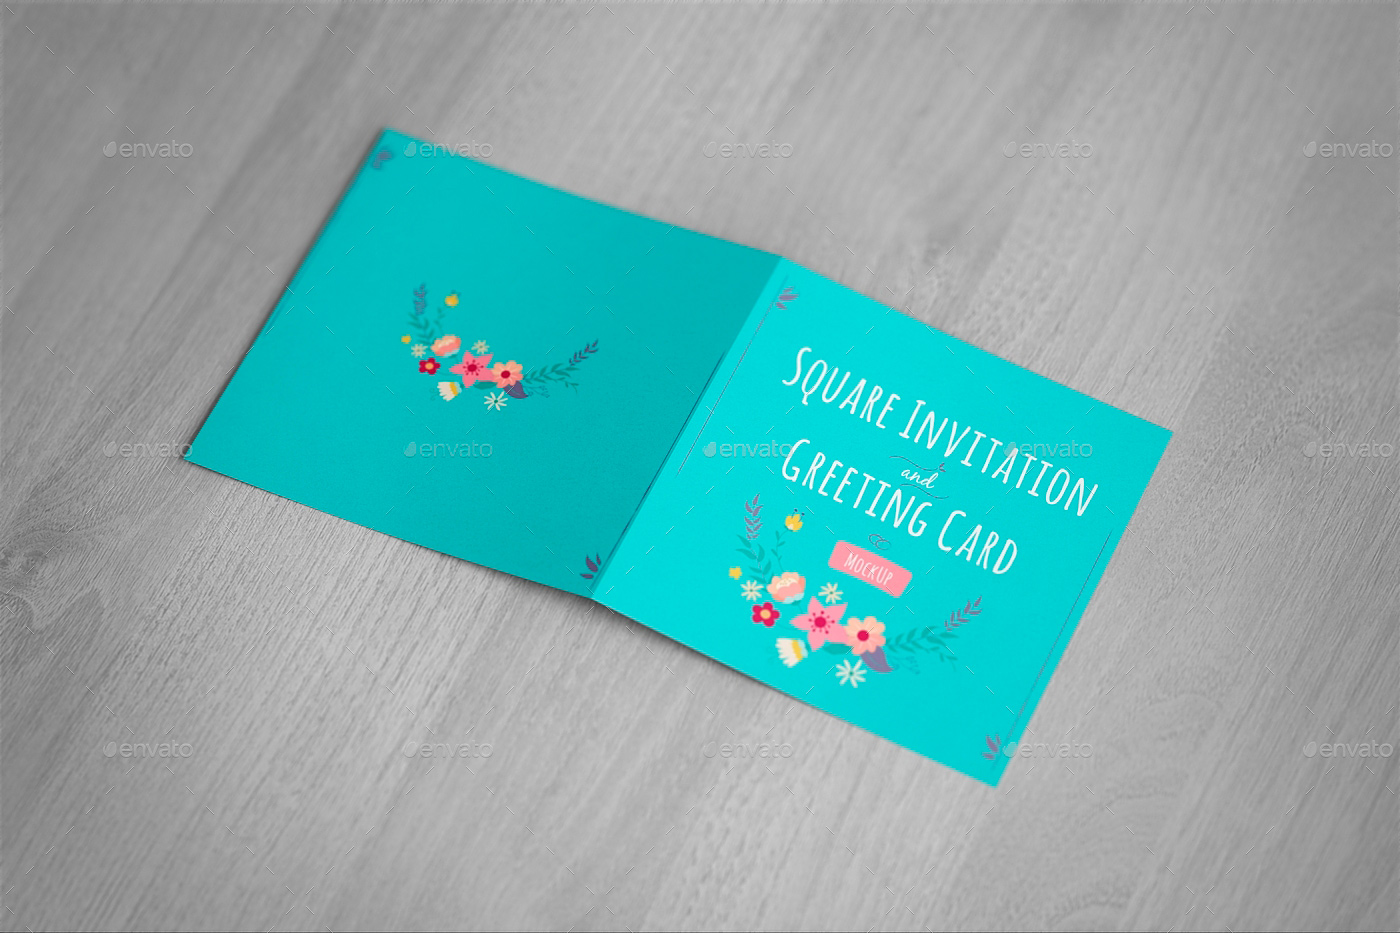 Square-Invitation-&-Greeting-Card-Mockup-02